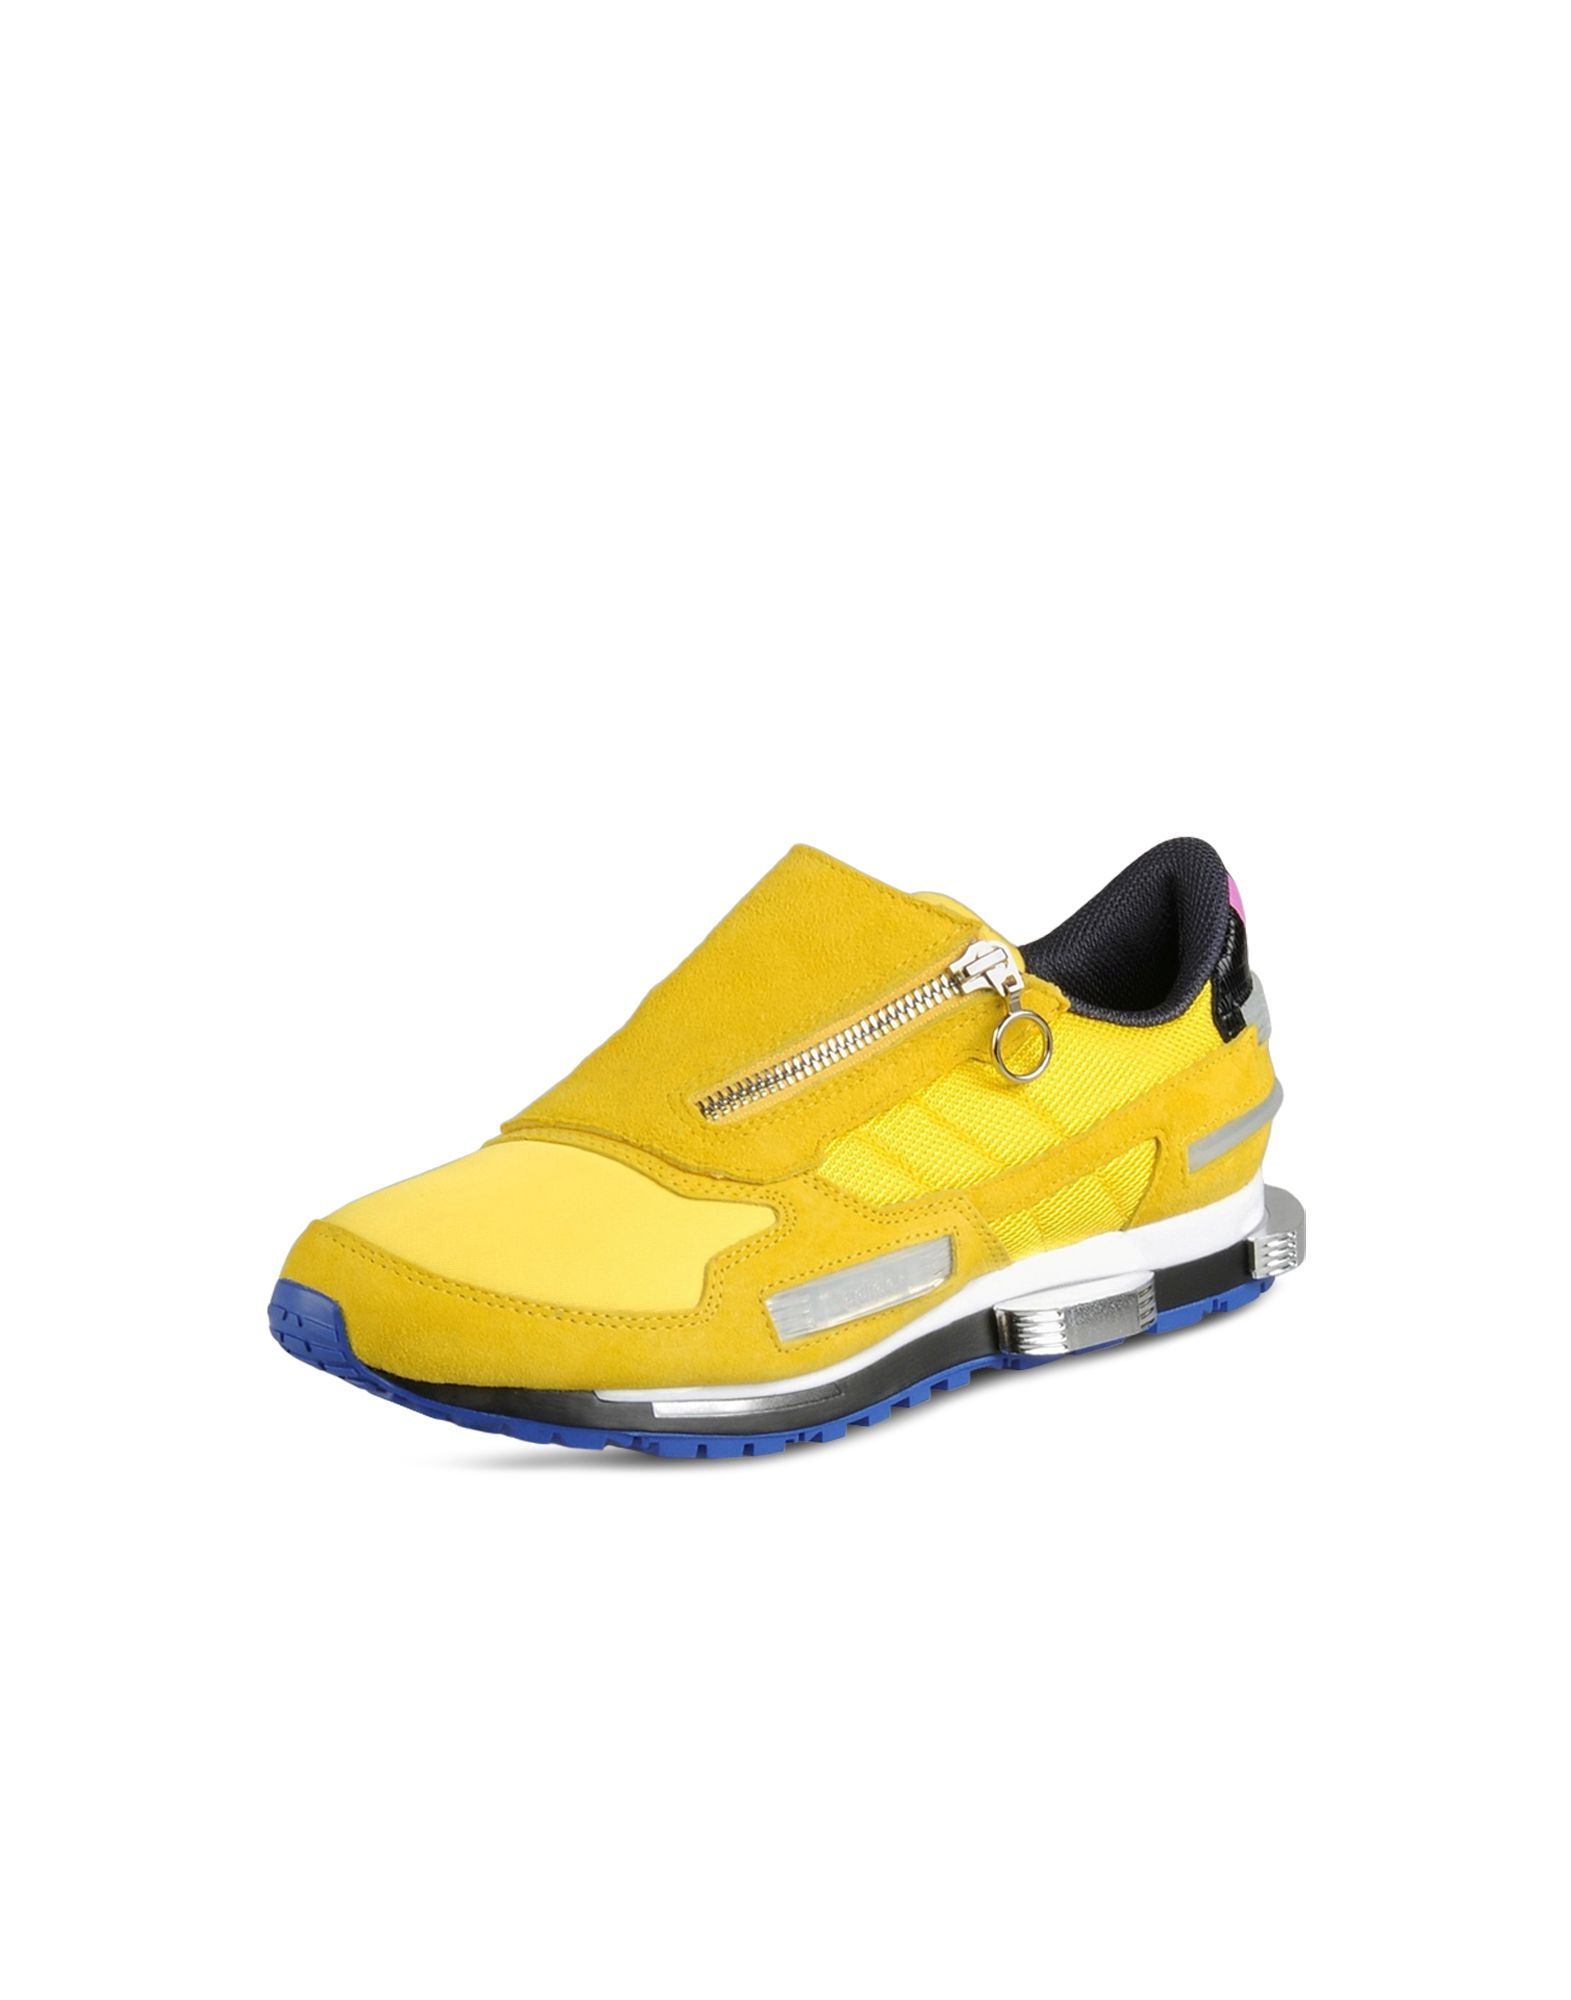 best website 7310e b778b RAF SIMONS RISING STAR 1 Sneakers | Adidas Y-3 Official Site